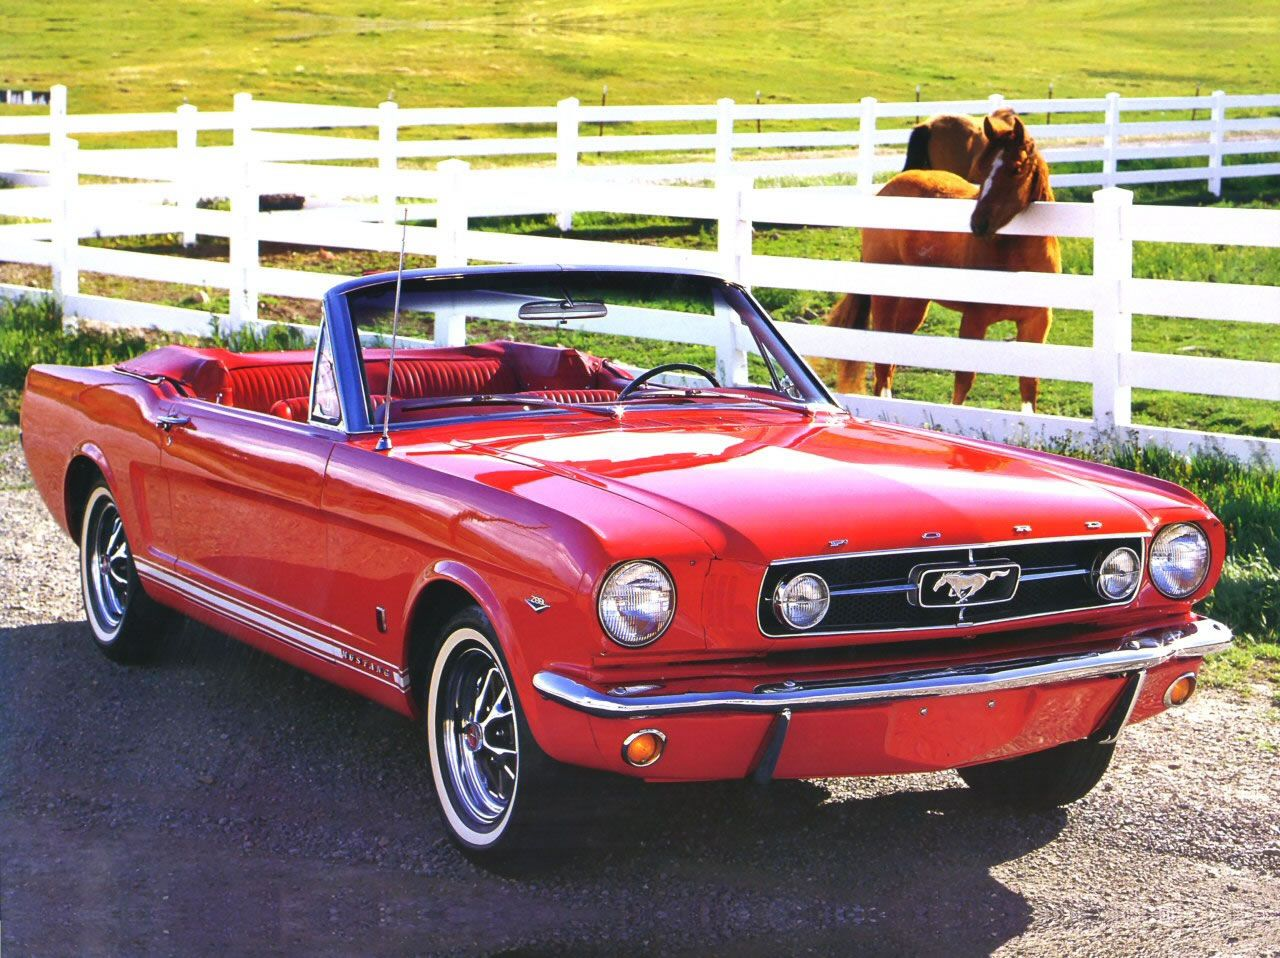 Red 1965 mustang convertable my dream car the real horse in the back isn t bad either